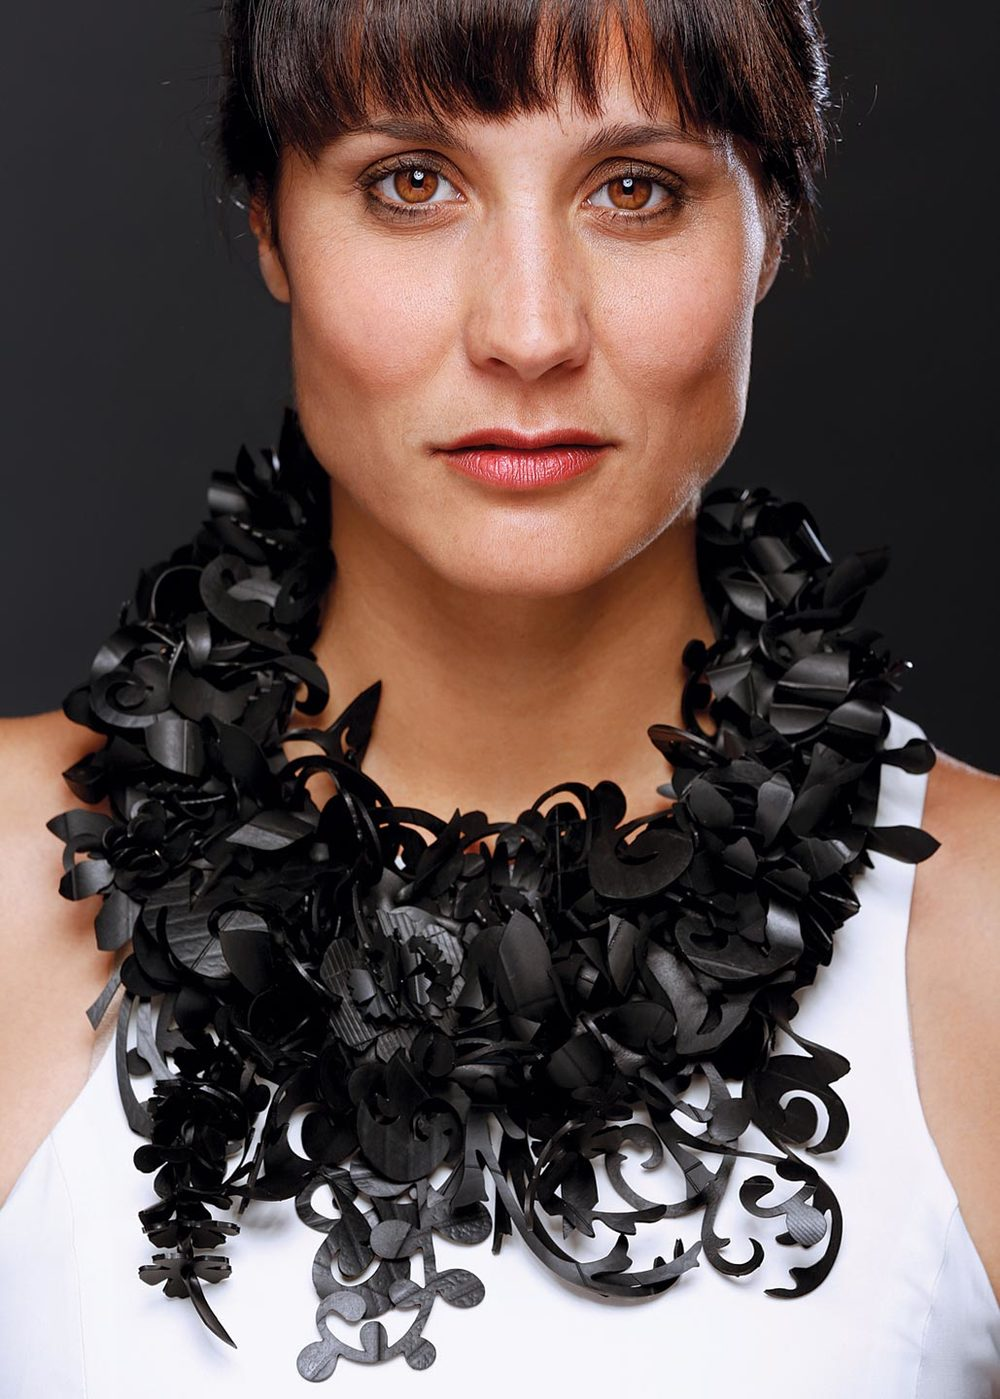 KATHLEEN NOWAK TUCCI. Secret Garden Necklace of recycled motorcycle and bicycle inner tubes and Nespresso coffee capsules, Second Place Alternative Metals/Materials.